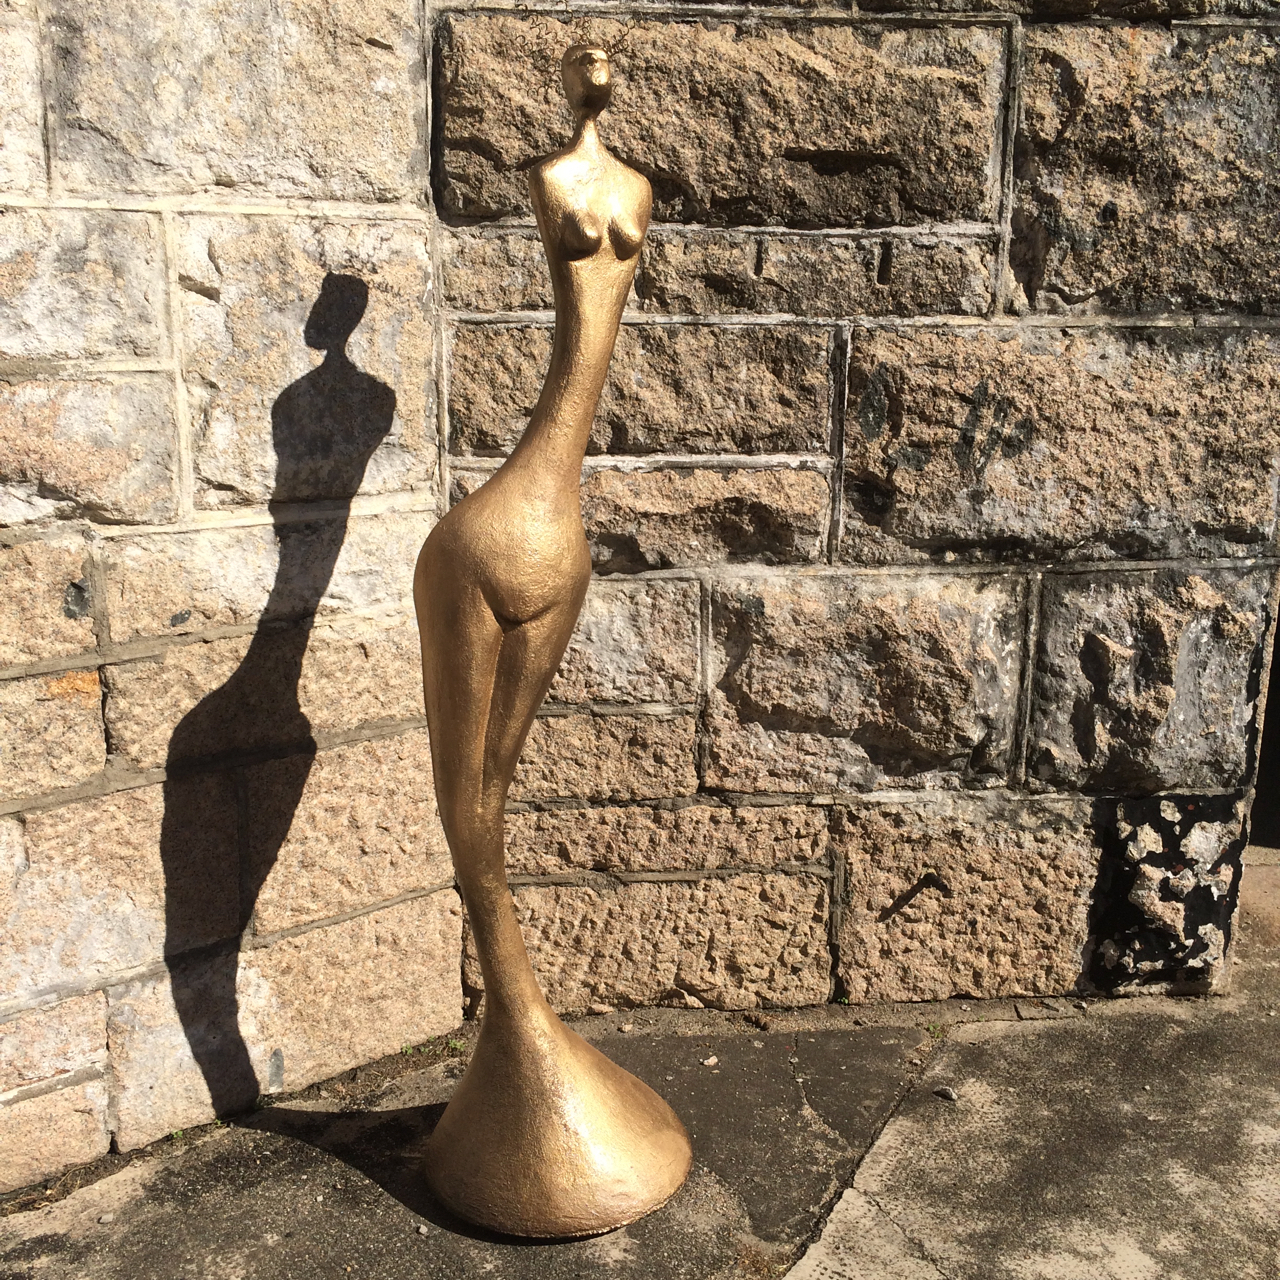 Sculpture_in_the_Gaol_2018-Joie_de_Vivre-by-Glen_Ravo.jpg